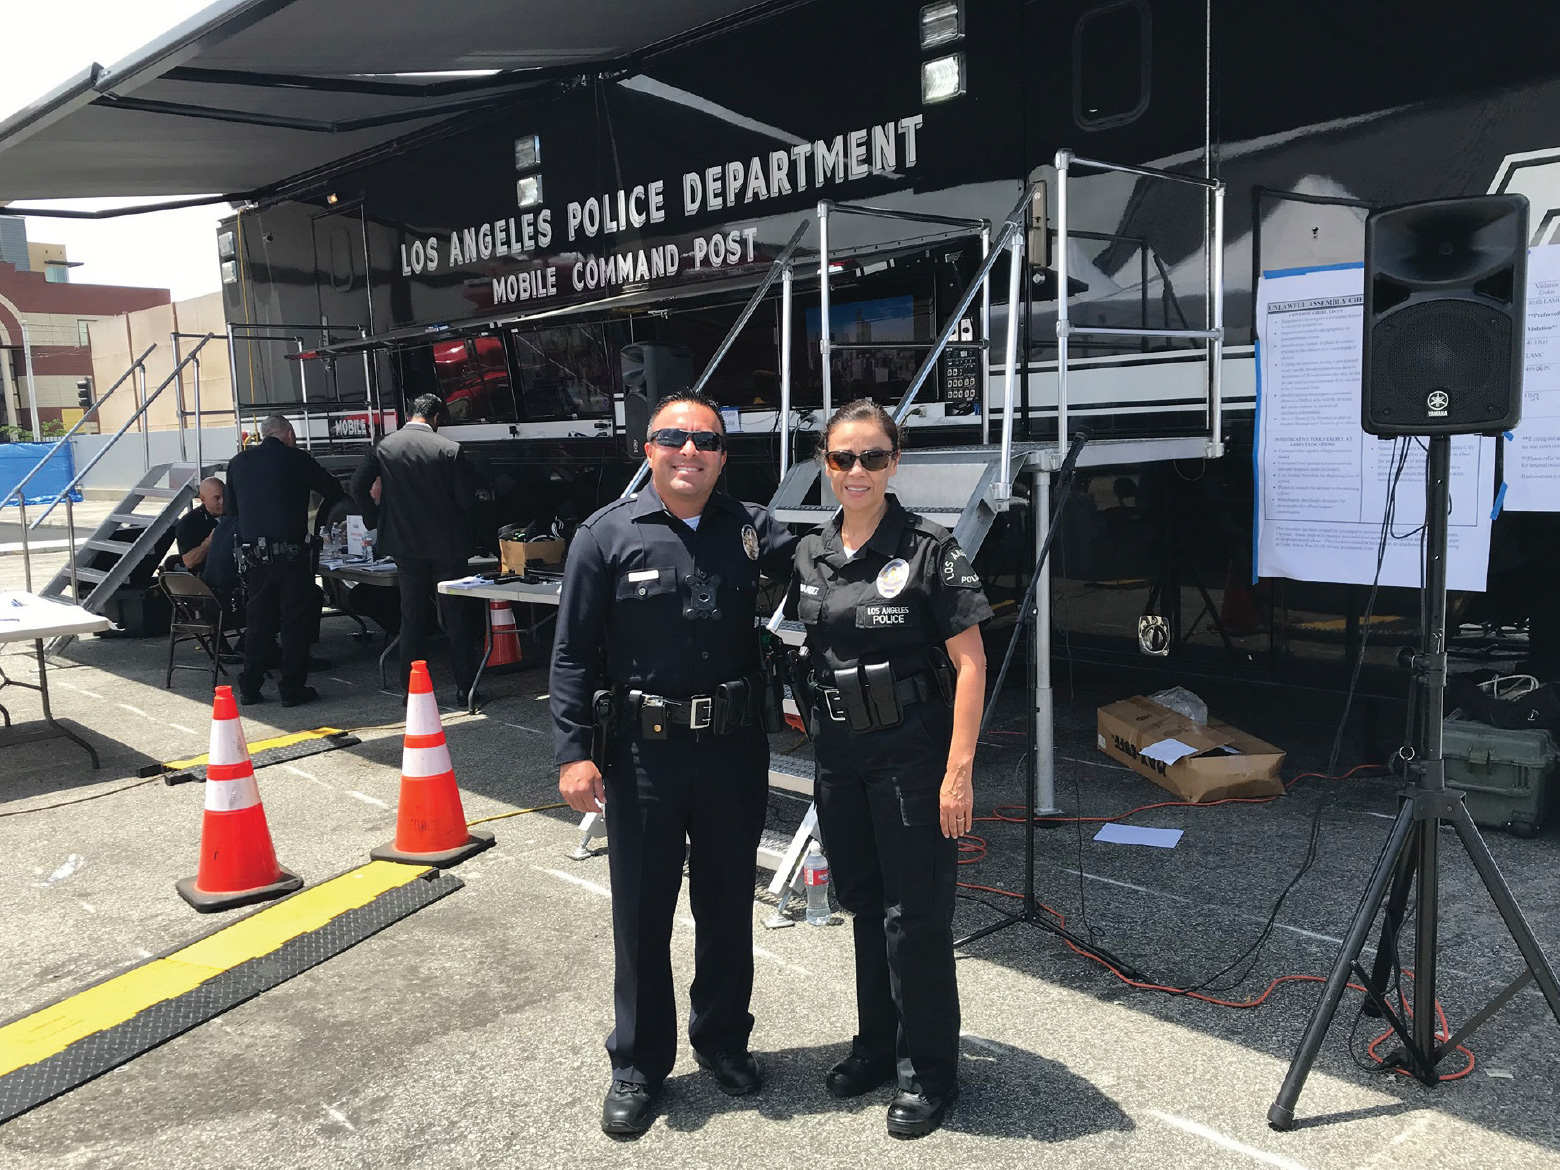 lapd-reserves-go-above-and-beyond-part-two-8